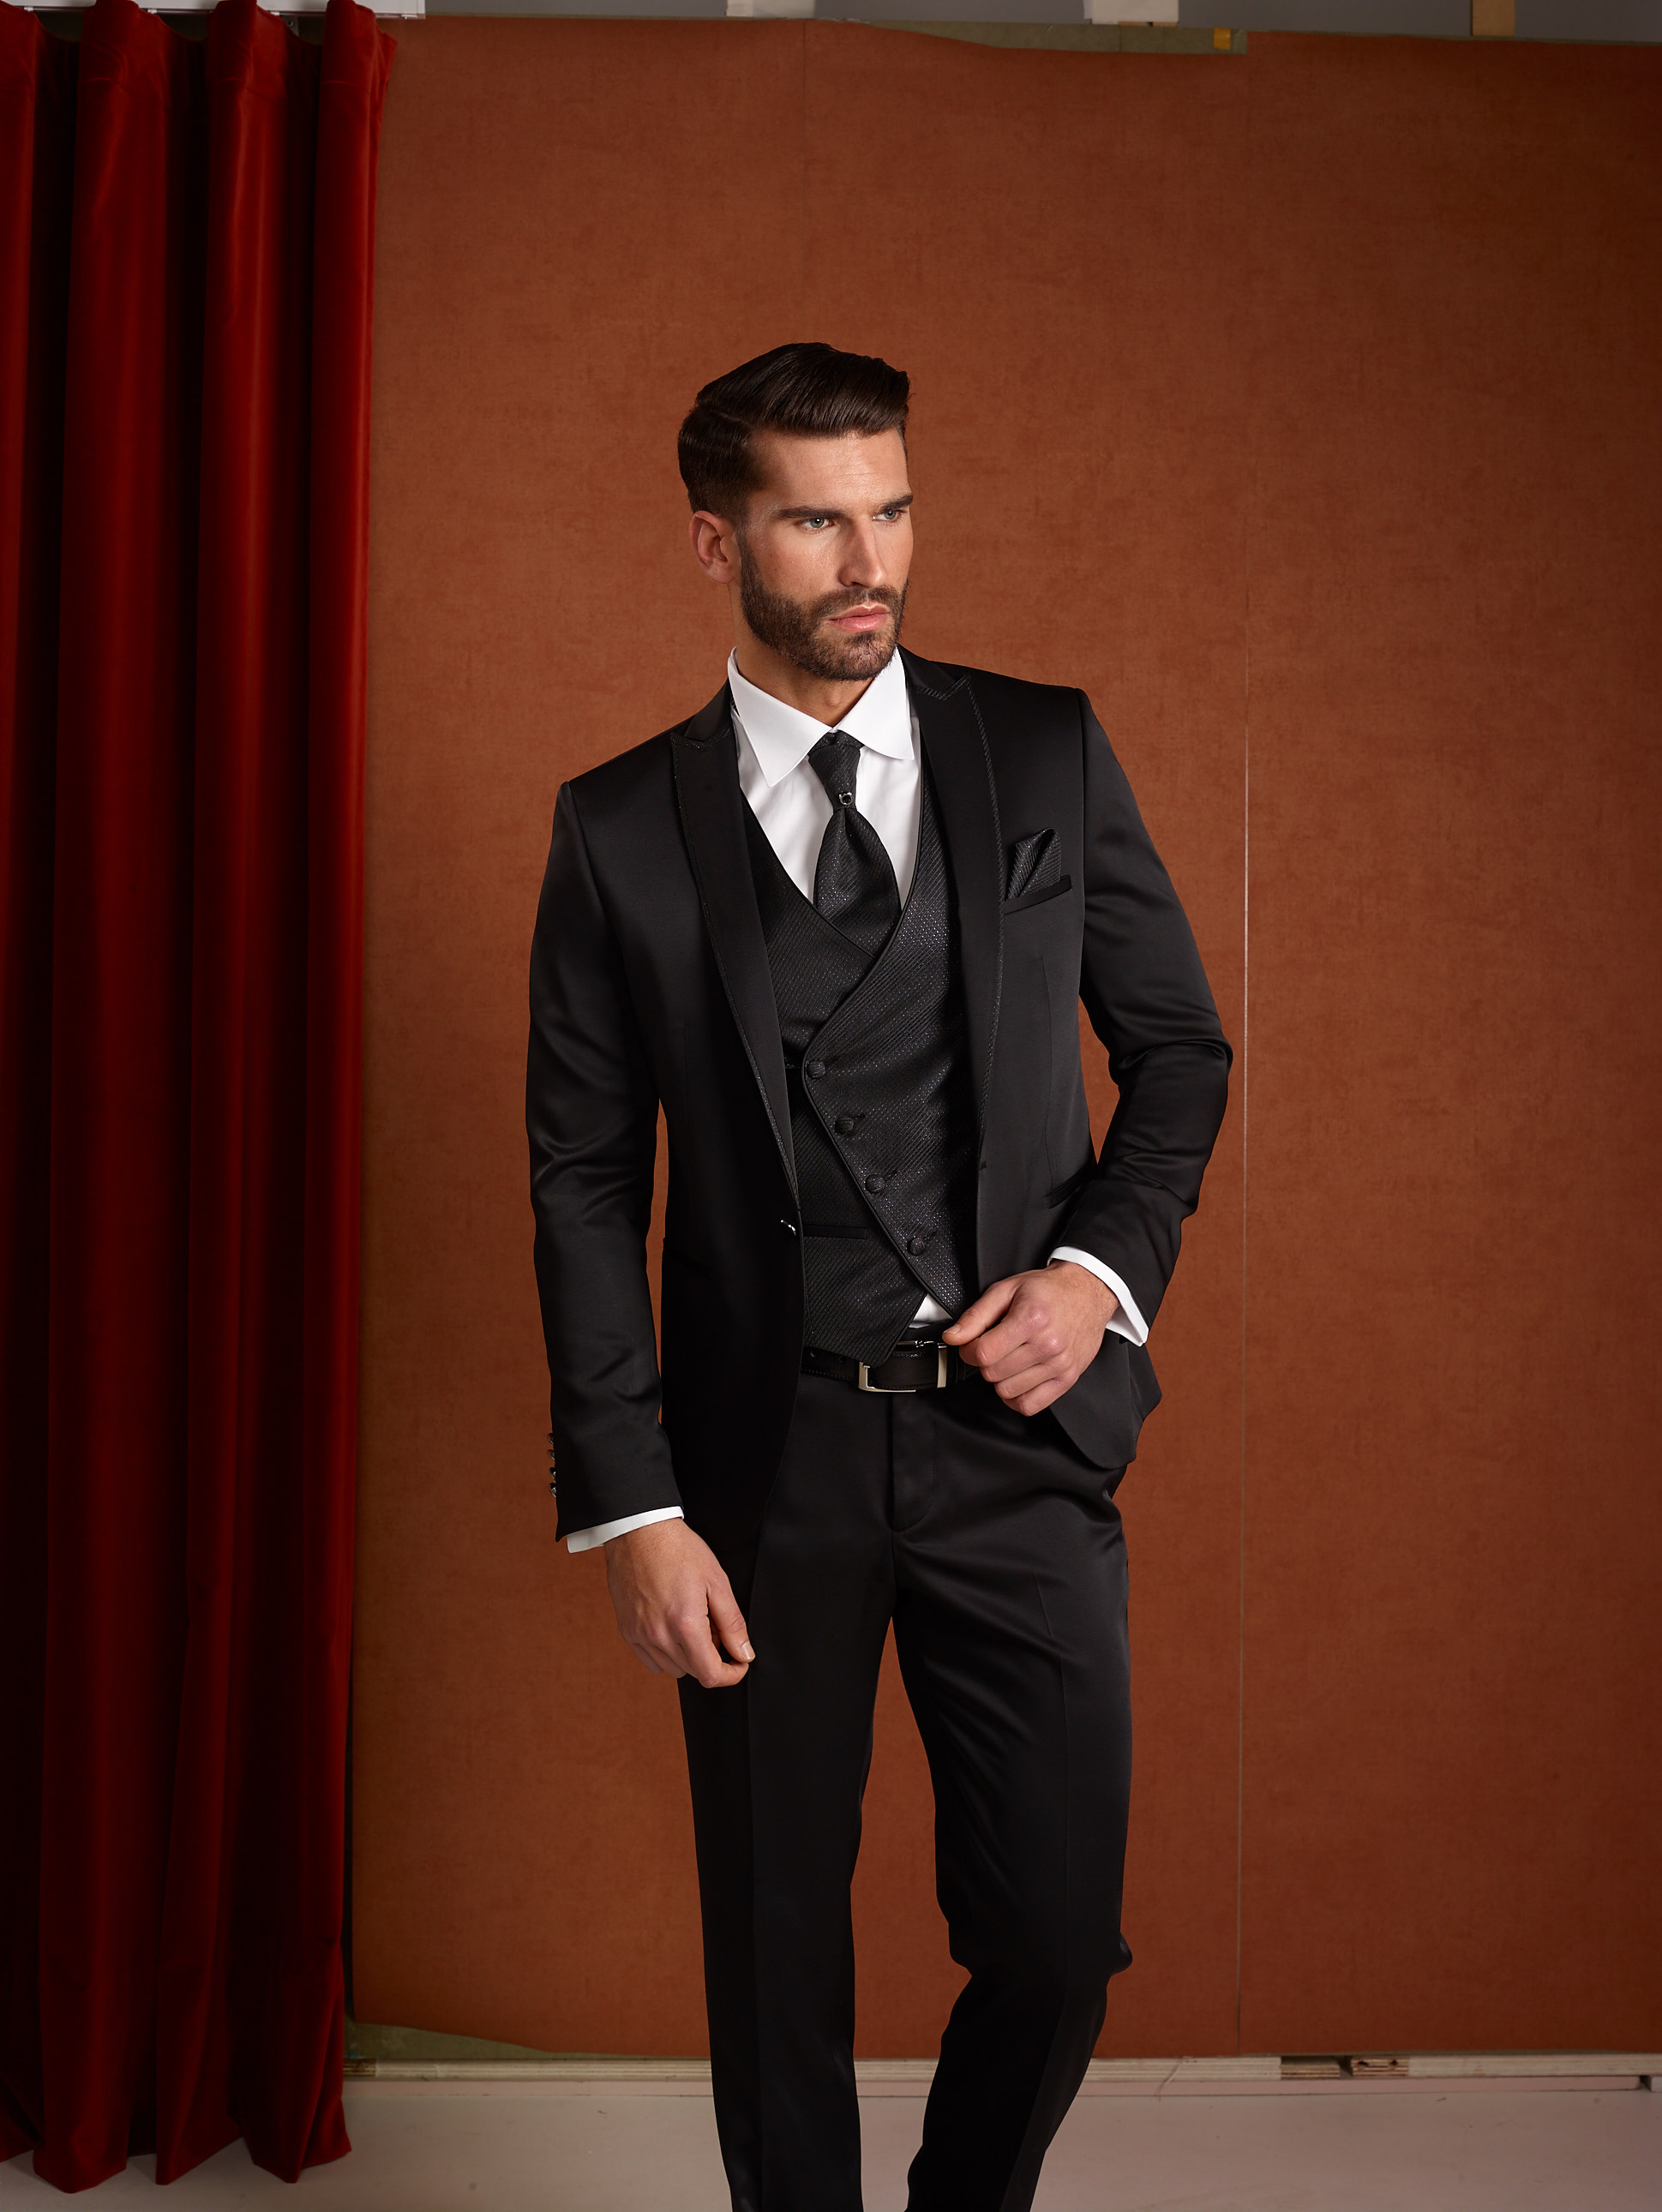 Lord Ton Men s Fashion - Tu Boda en Mallorca 8a348ac8ee6